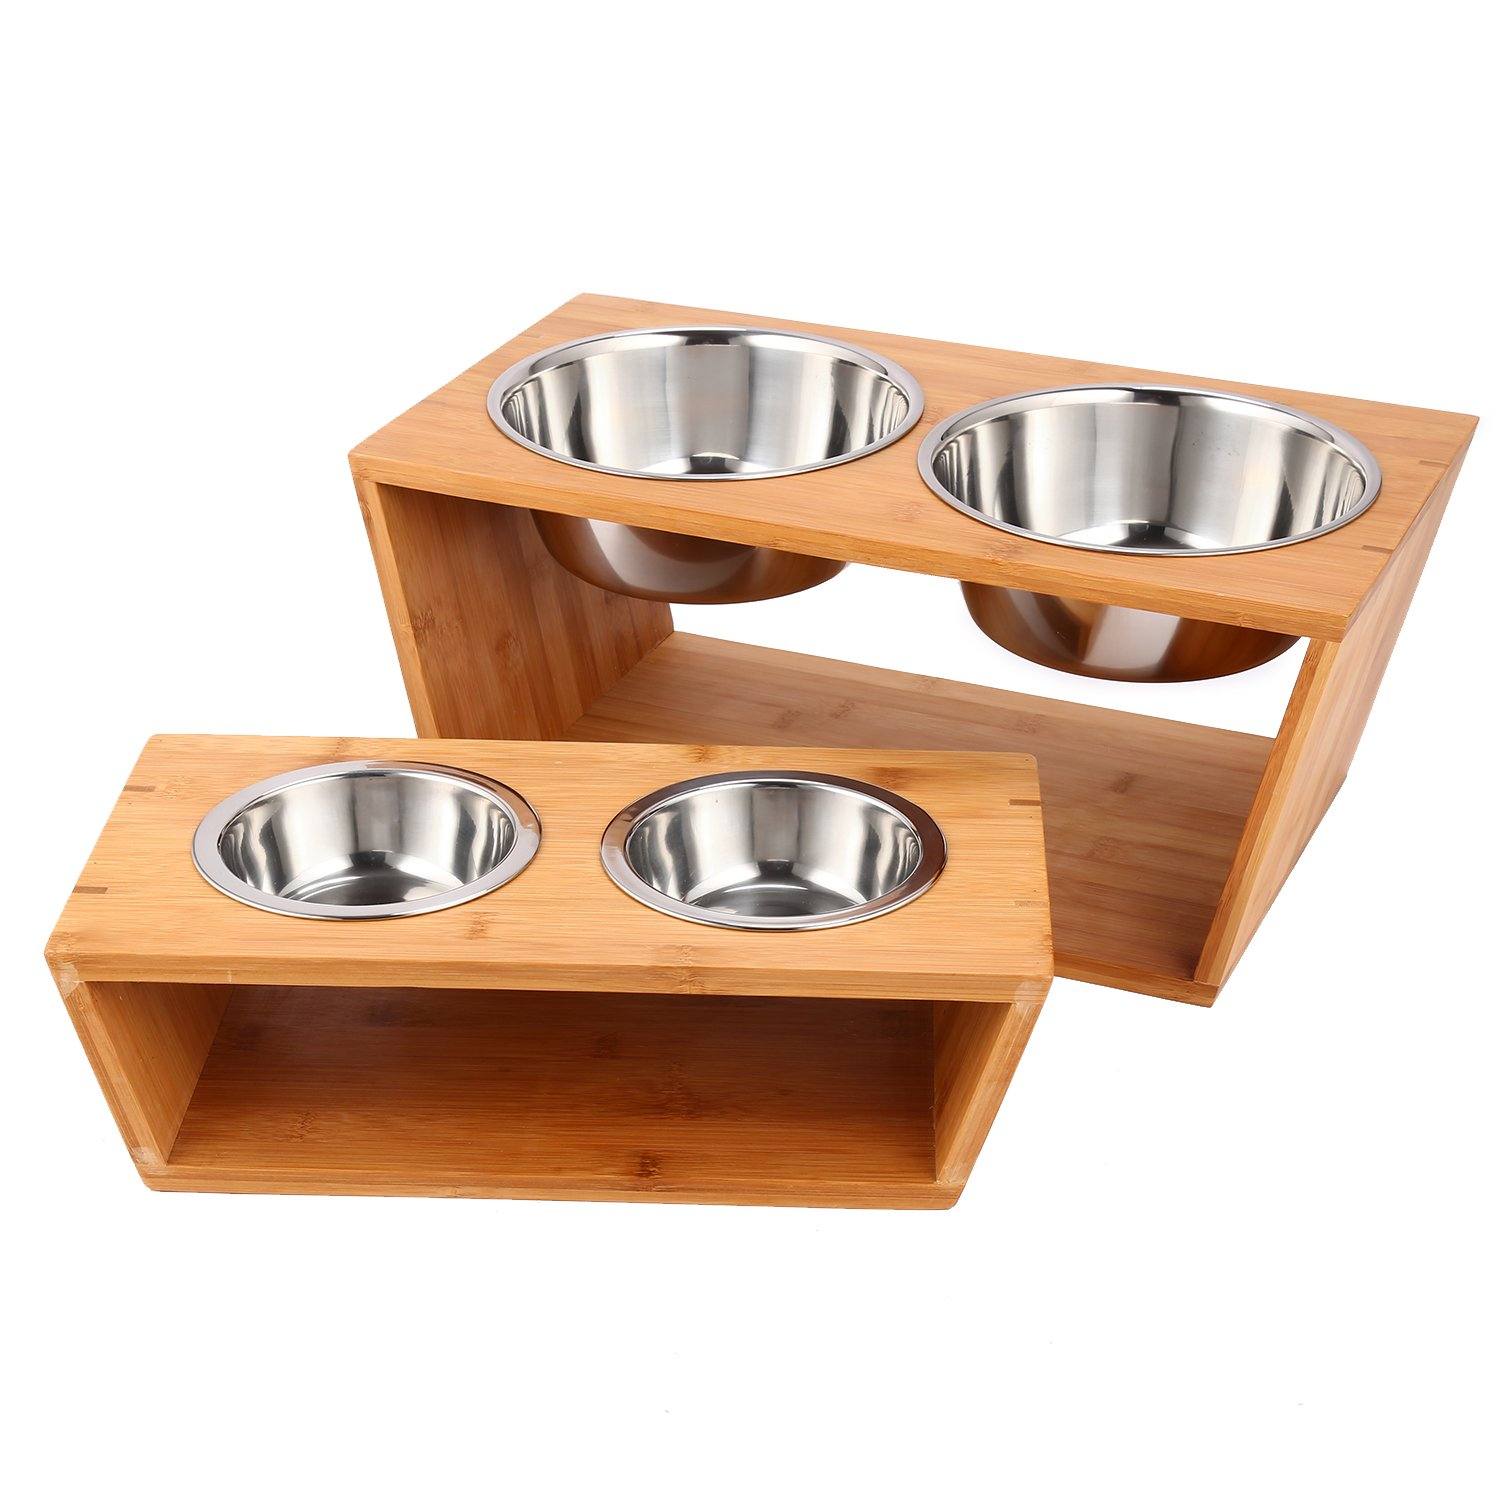 Athomestore Raised Pet bowls for Cats and Dogs,Double Bamboo Stand Food Water Feeding Station w/Two Stainless Steel Bowls (Large) (7'')